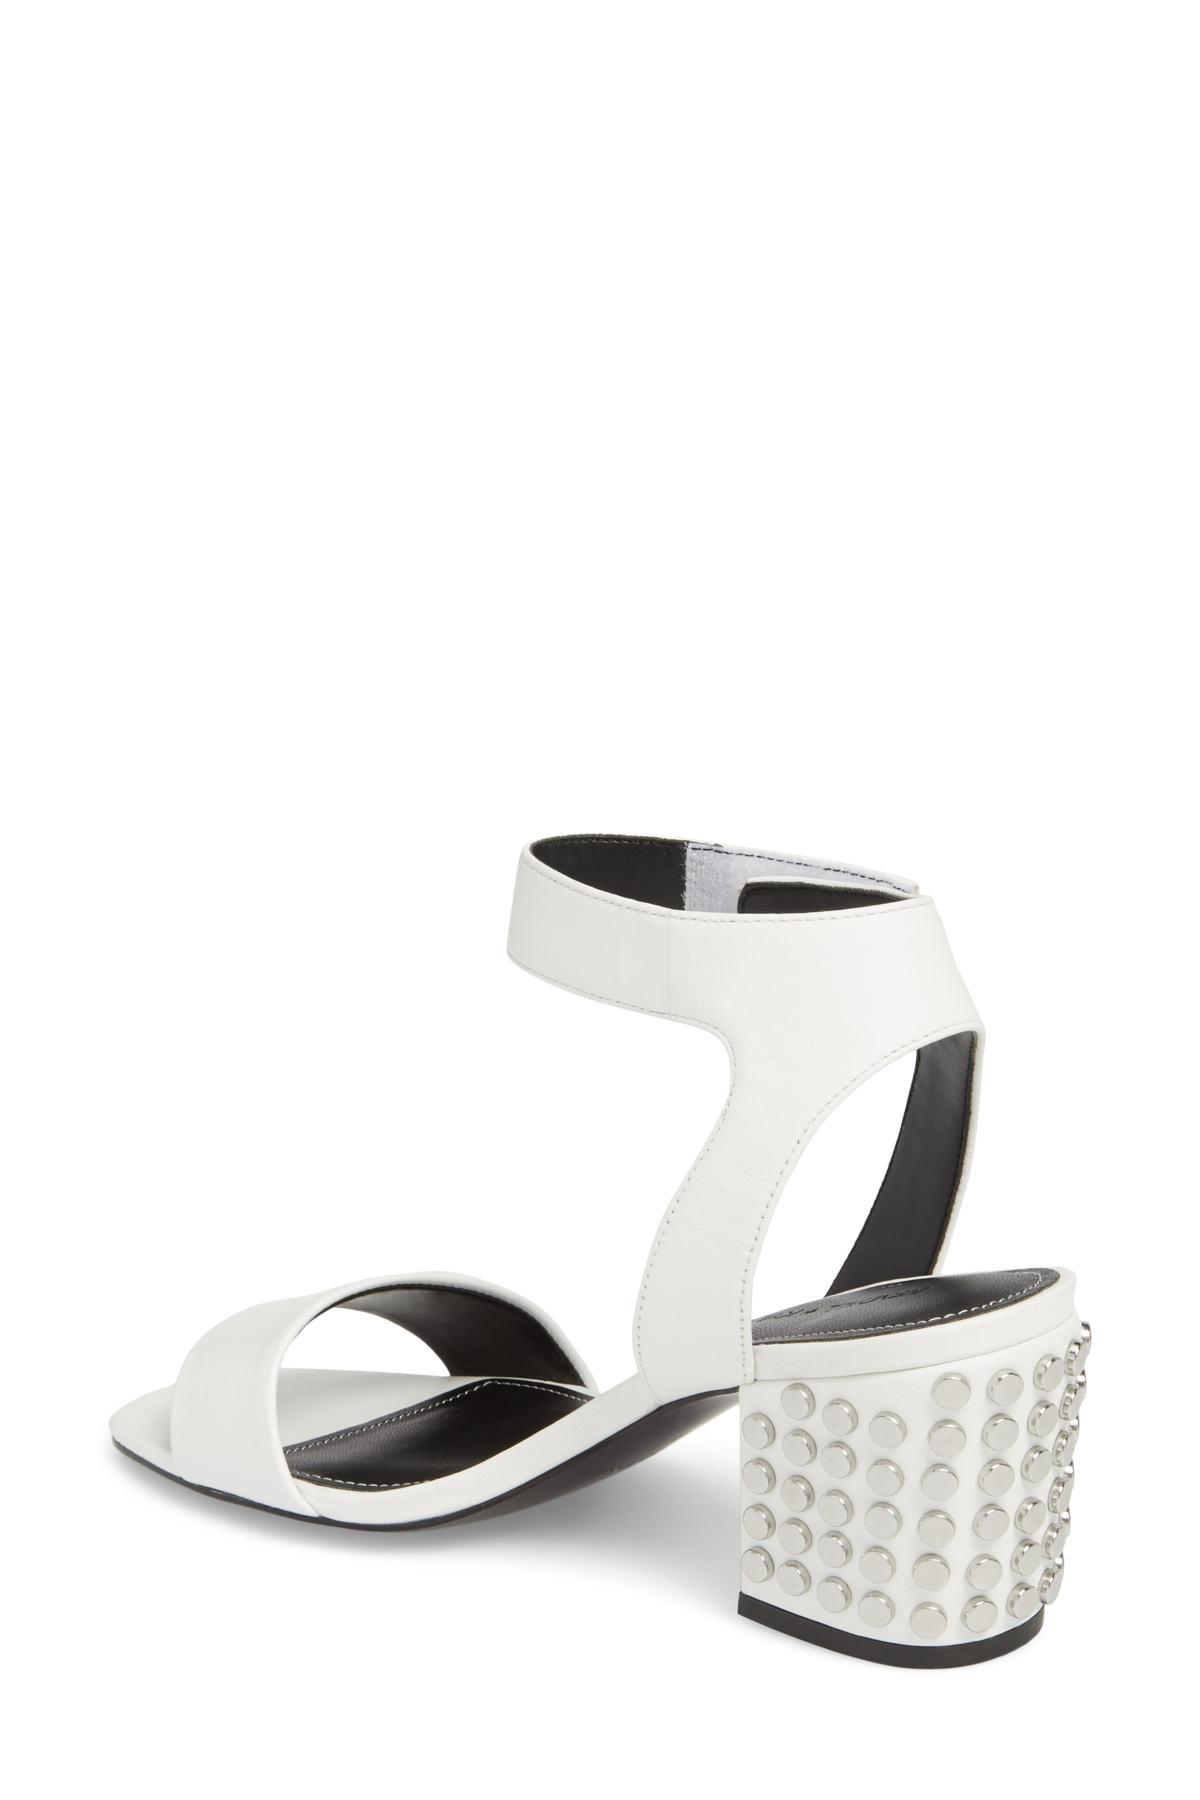 568a03ab2e20 Kendall + Kylie - Multicolor Sophie Sandal (women) - Lyst. View fullscreen